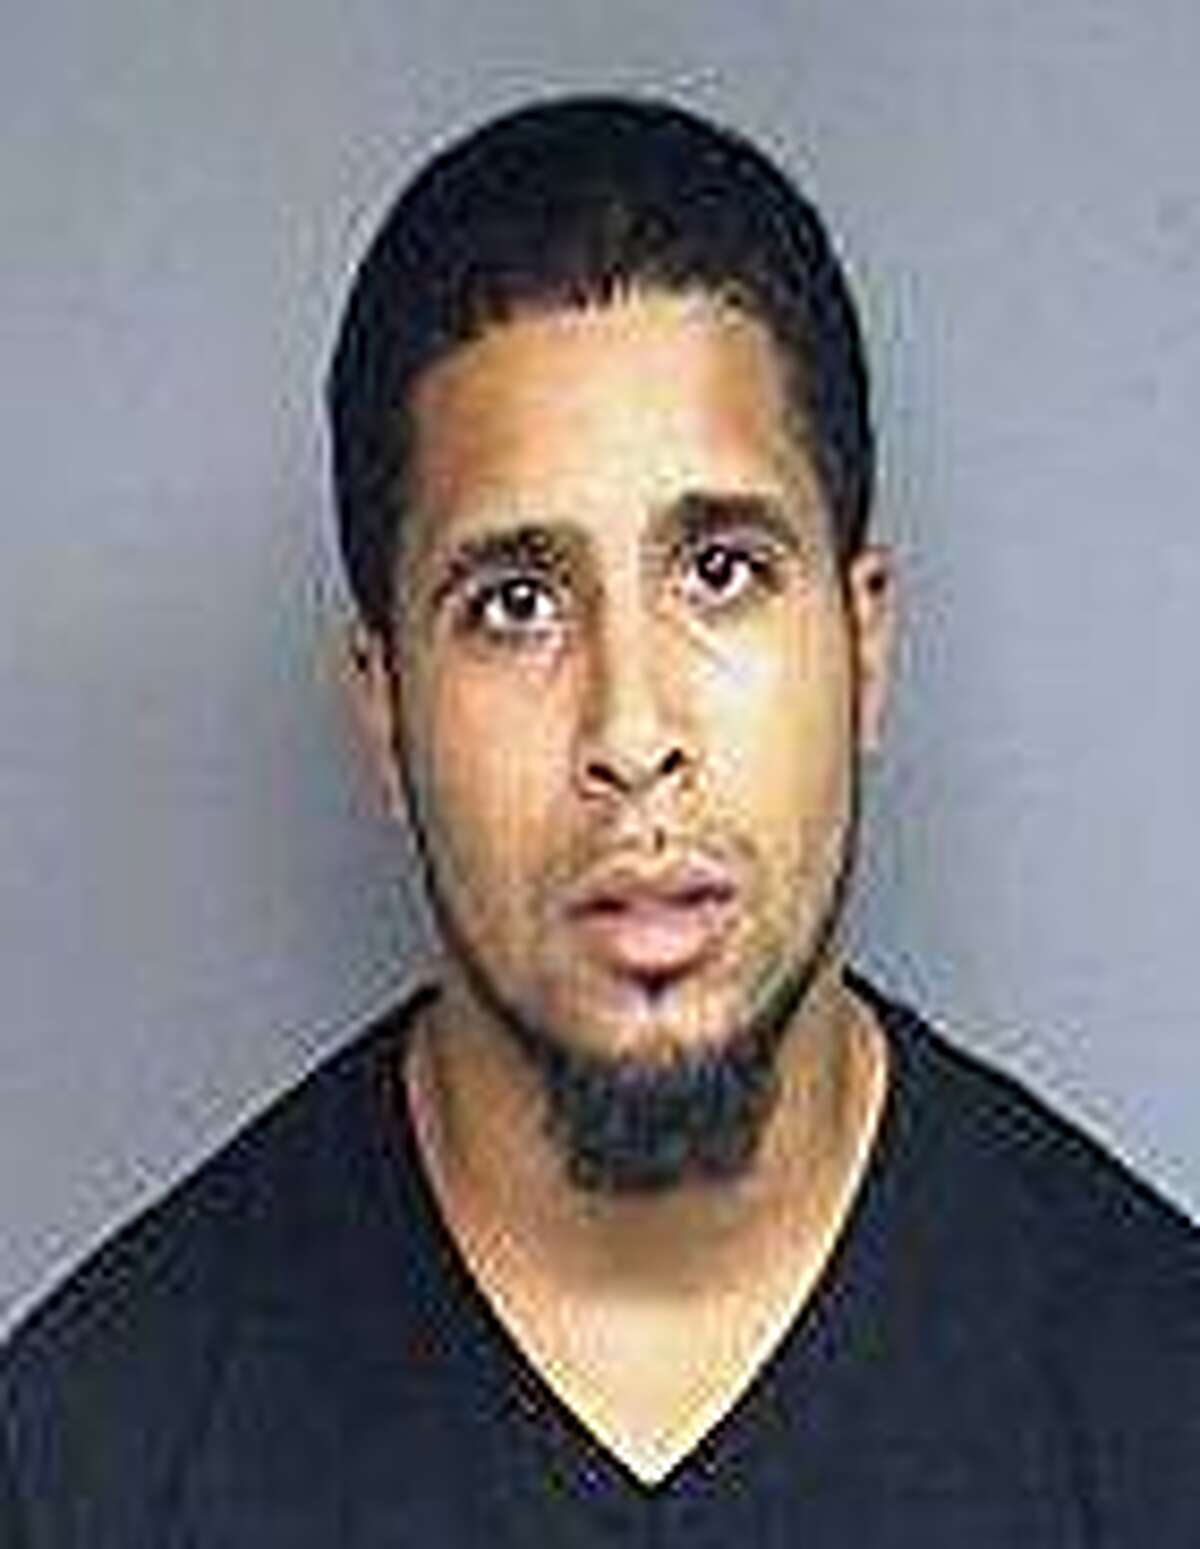 Jonathan J. Garces, of Yonkers, N.Y. was arrested on Tuesday, Aug. 28, 2018 and charged with sixth-degree and conspiracy at larceny in the sixth degree and first-degree criminal trespass. Police said Garces and Richard Tolentino, also of Yonkers, stole used cooking oil from a Summer Street business. The used cooking oil is stolen and sold on the black market and turned into bio-fuel.